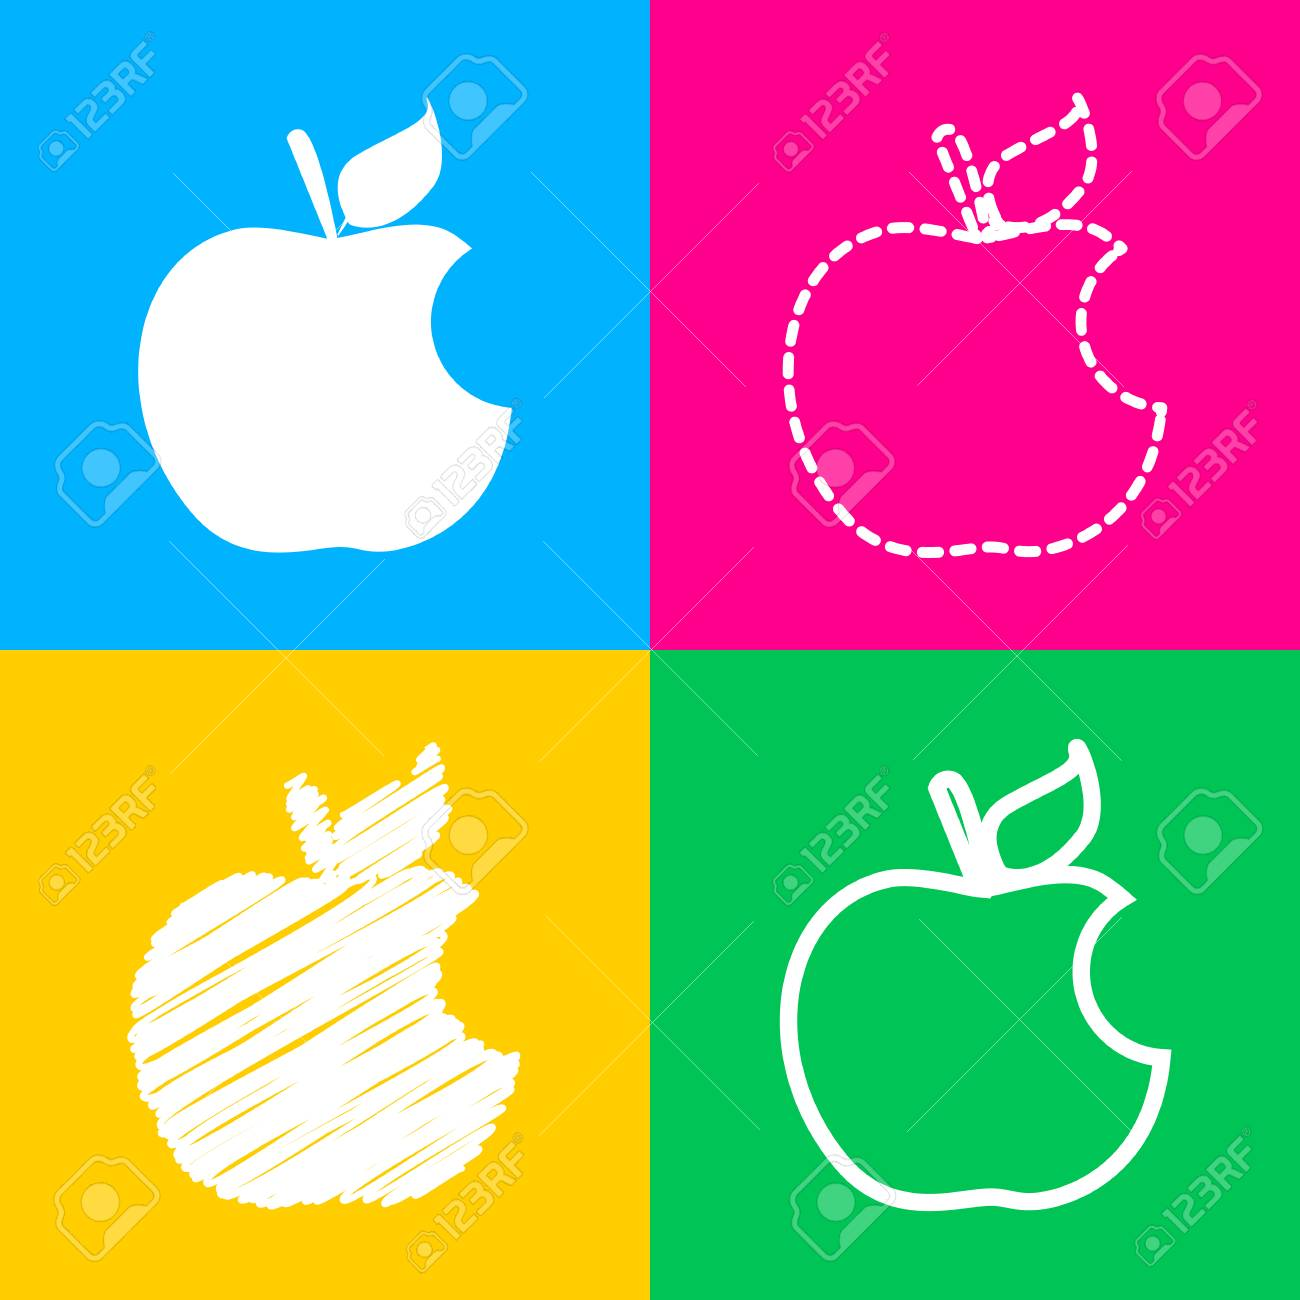 bite apple sign. four styles of icon on four color squares. royalty